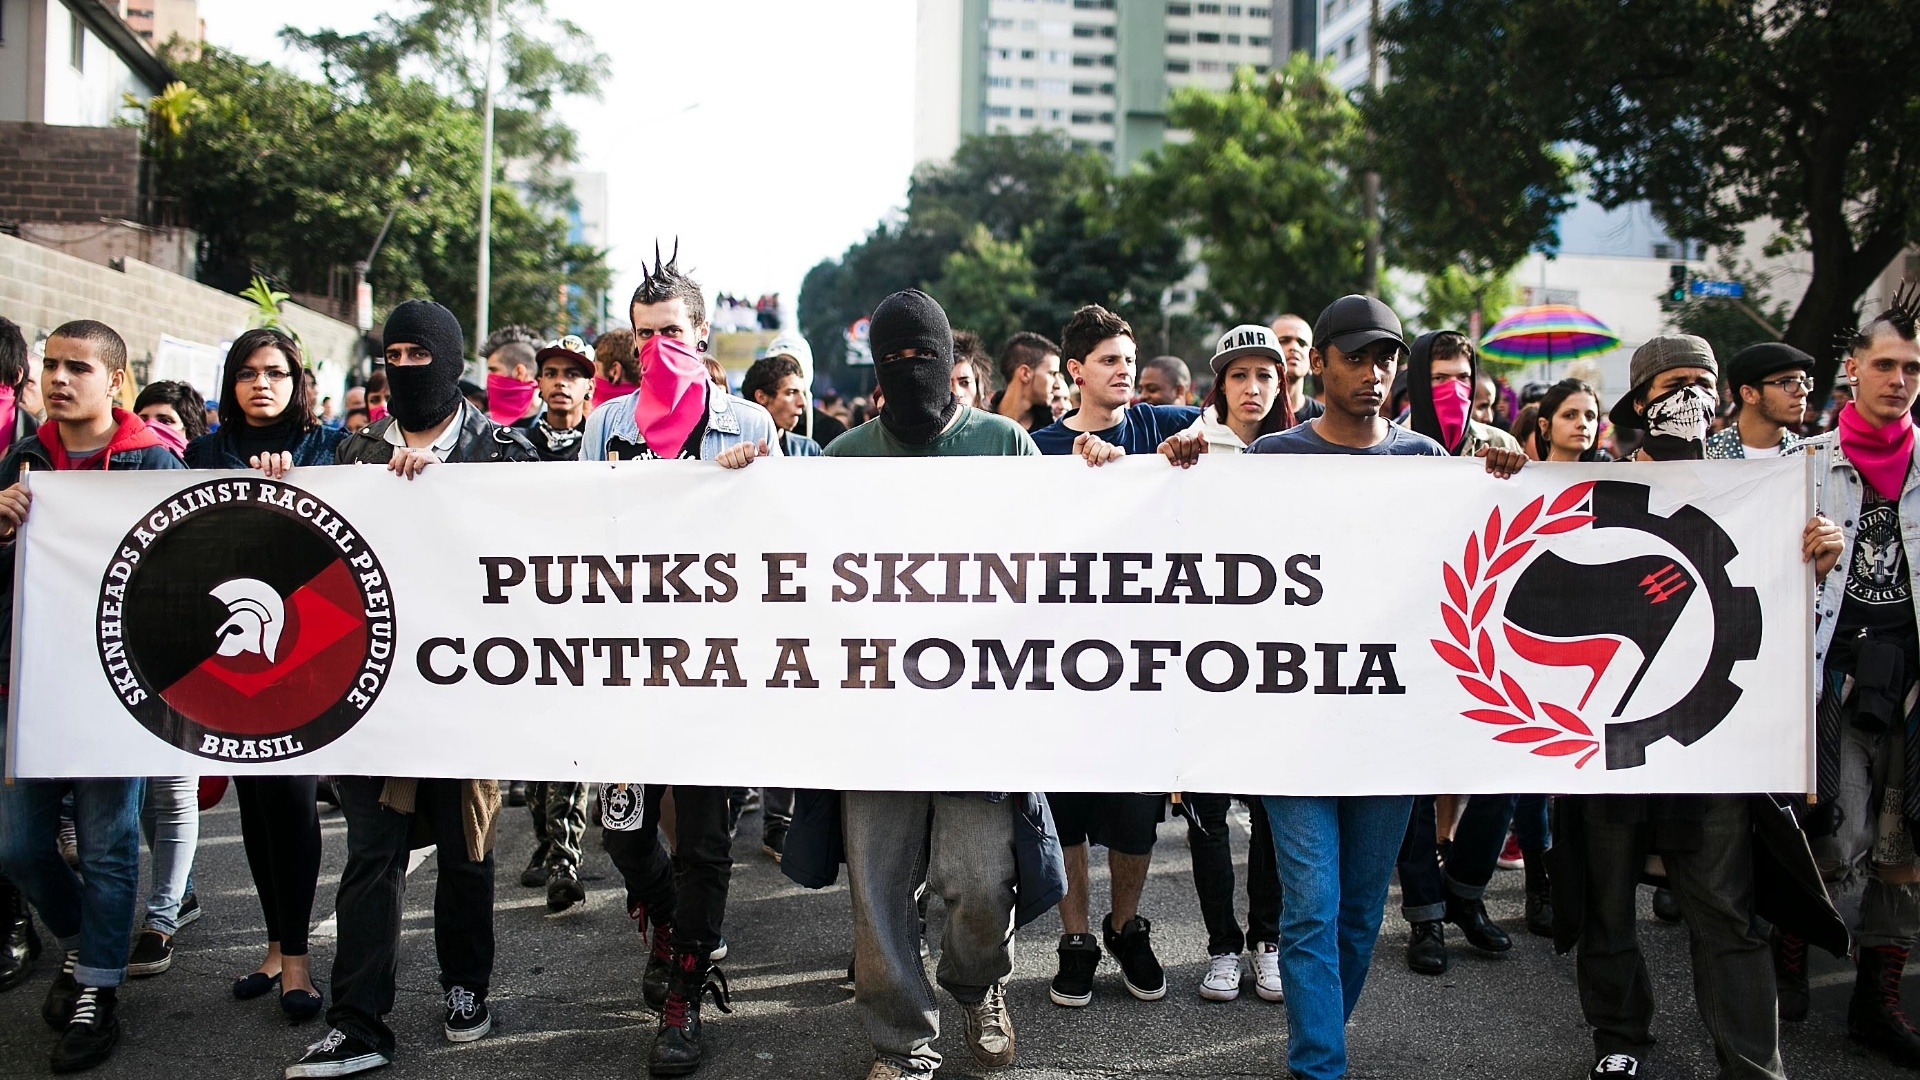 10.jun.2012 - Punks e skinheads protestam contra a homofobia na tarde deste domingo (10) durante a 16 edio da Parada do Orgulho LGBT de So Paulo, na avenida Paulista 